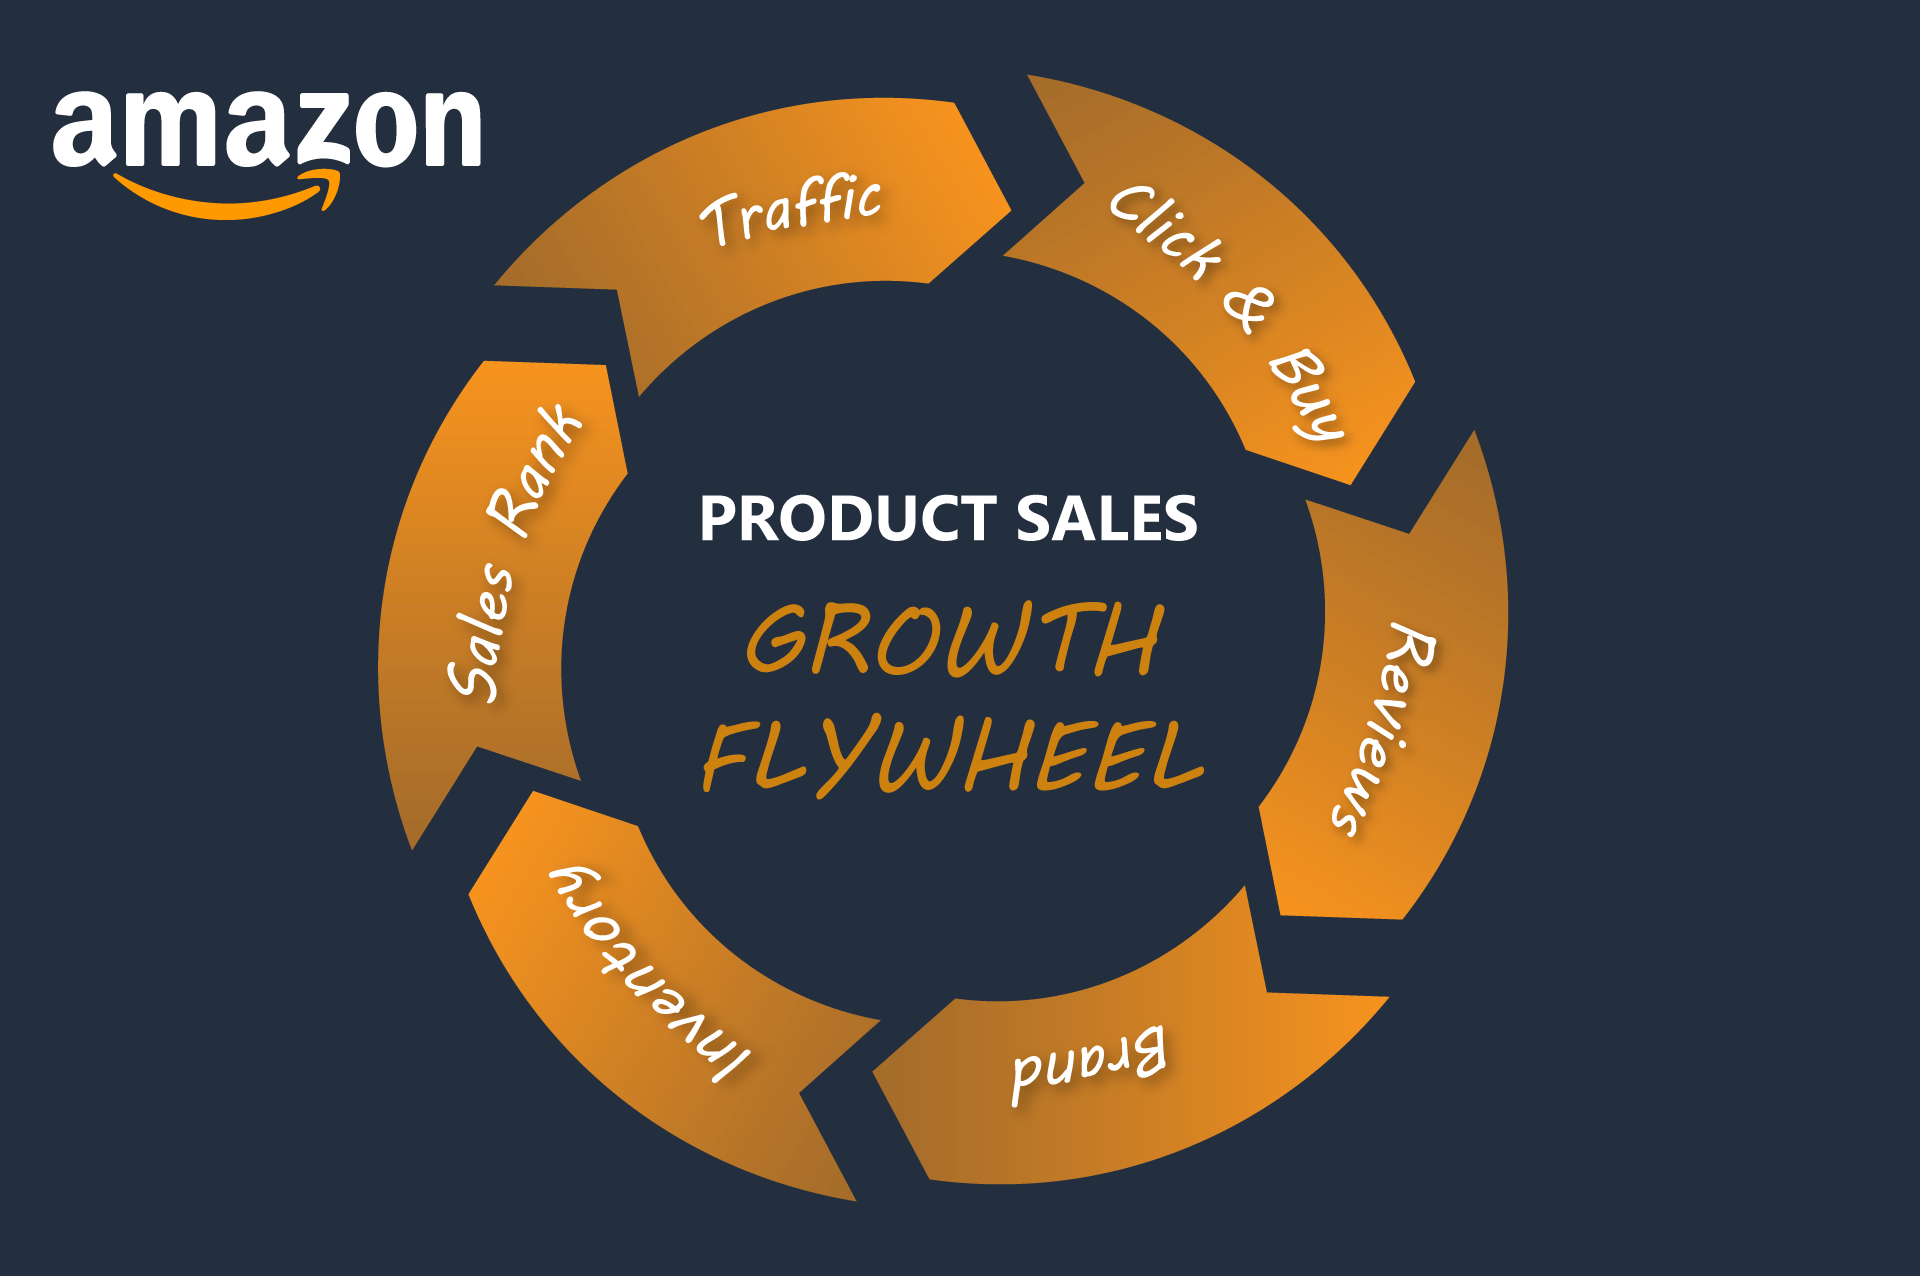 Amazon's Flywheel Momentum